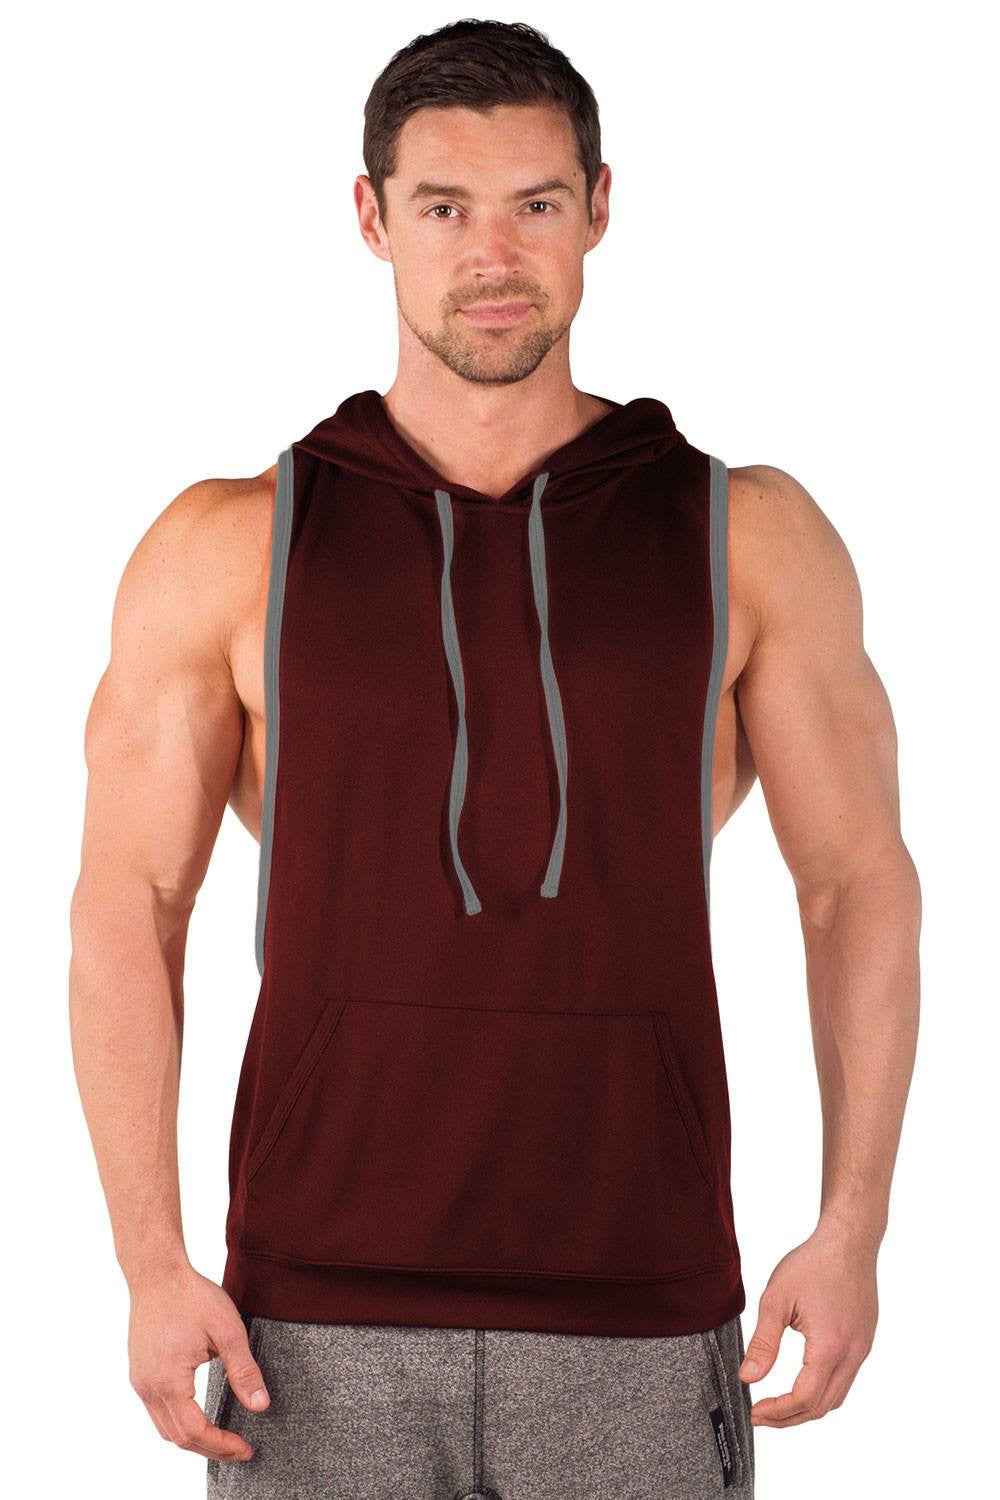 eaef0a44405b36 Two Tone Driwear Stringer Hoodie - Pitbull Clothing